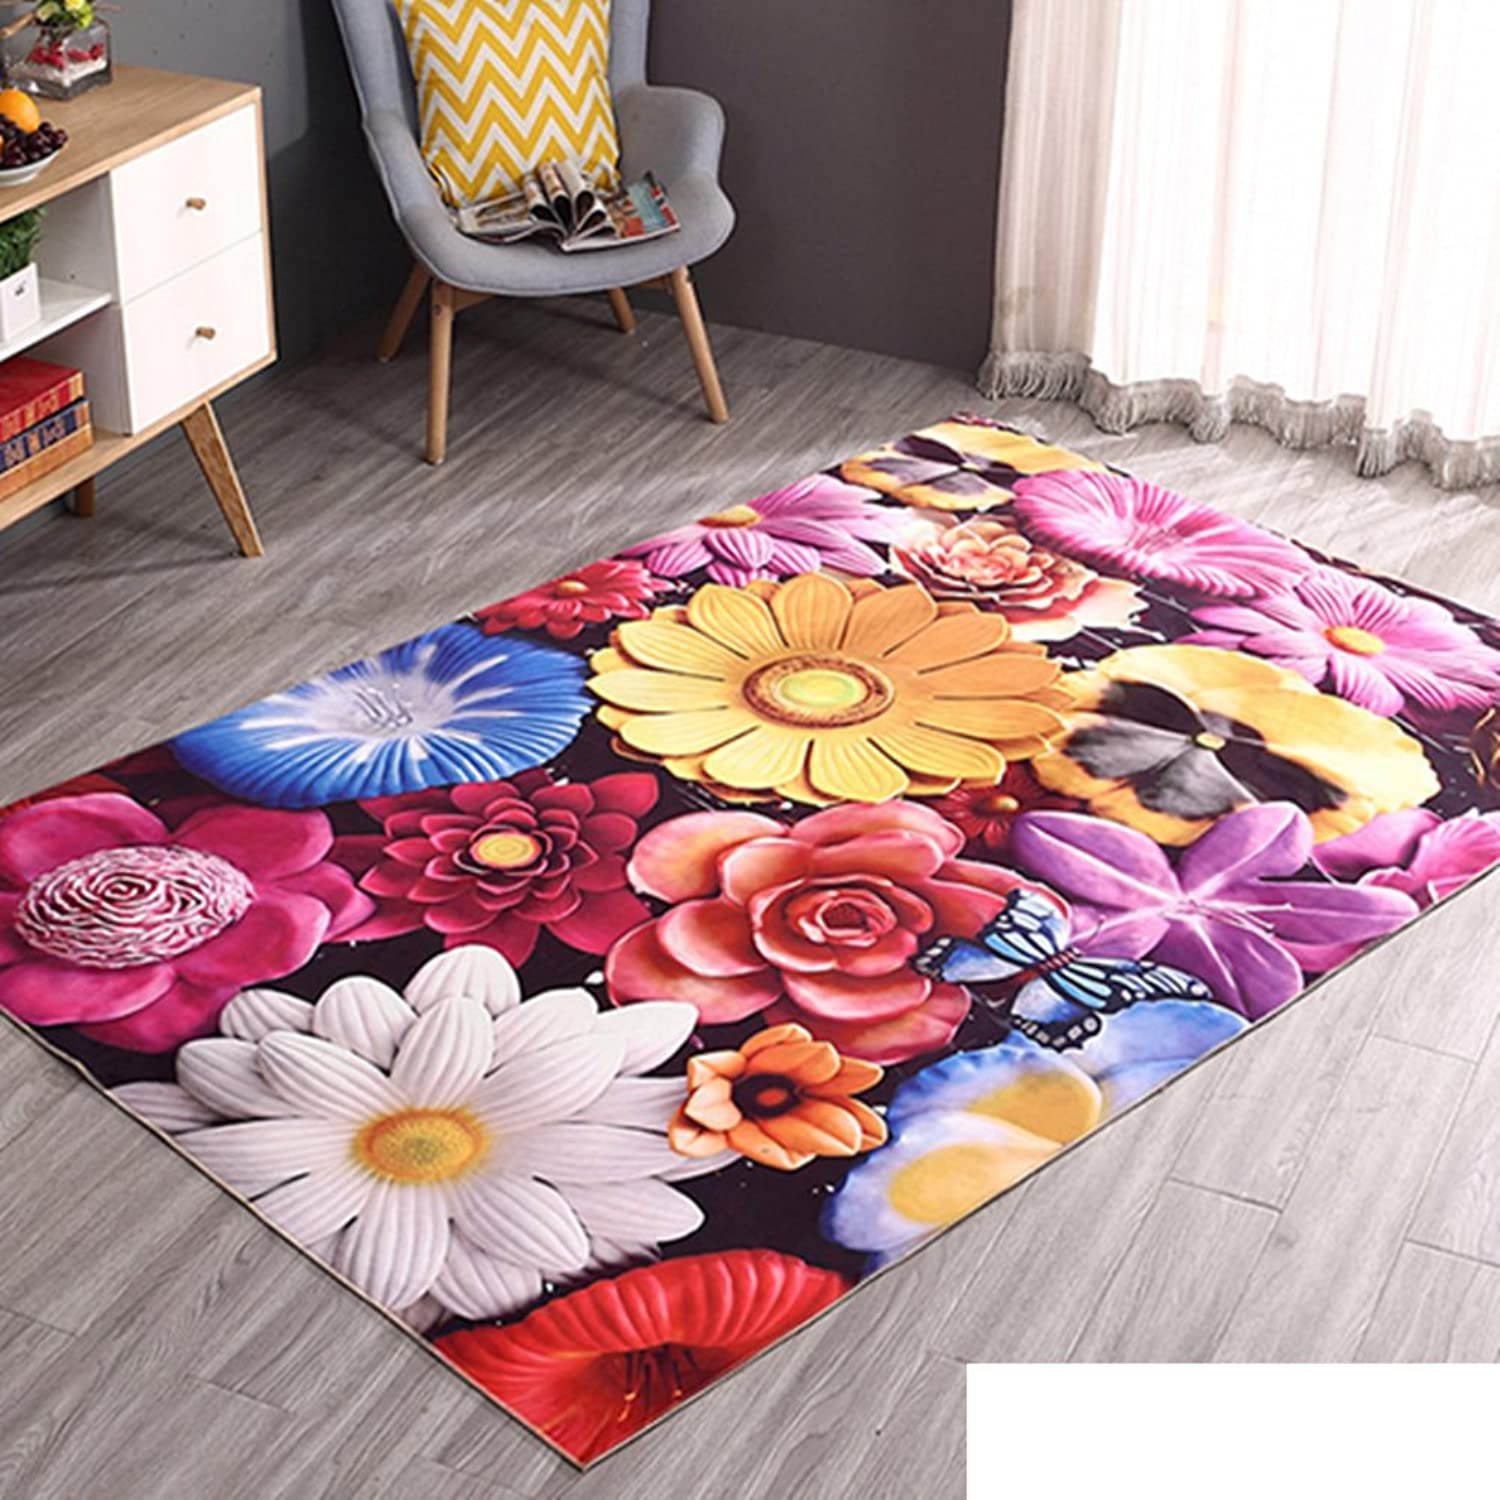 DXG&FX 3d non-slip bedroom carpet living room table door mat rectangular mats for household use-I 120x180cm(47x71inch)